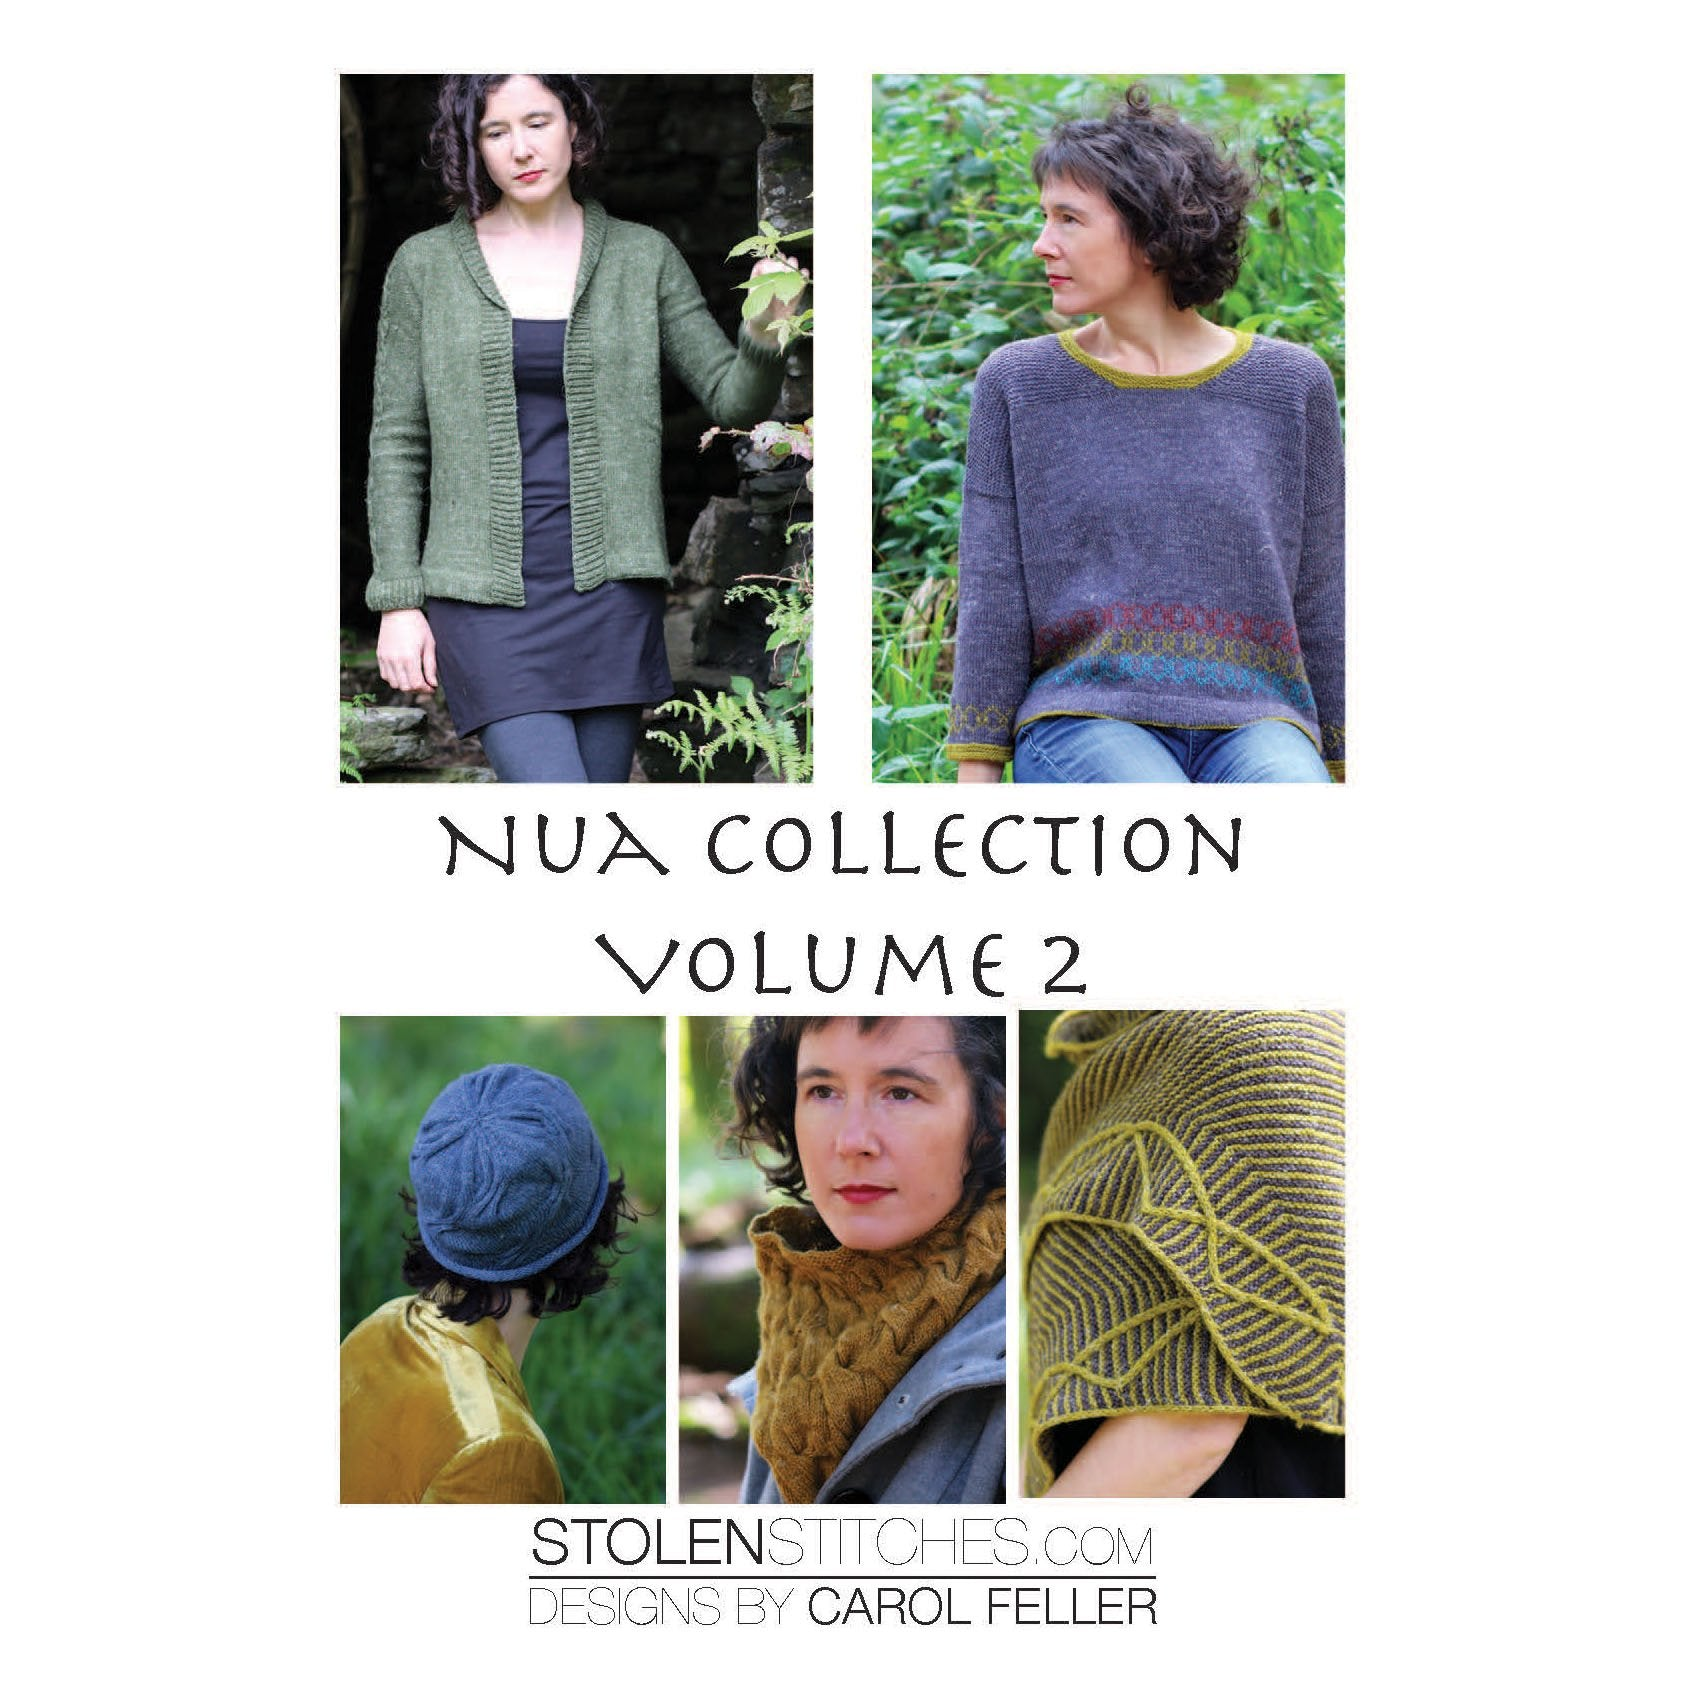 The Nua Collection volume 2 by Carol Feller